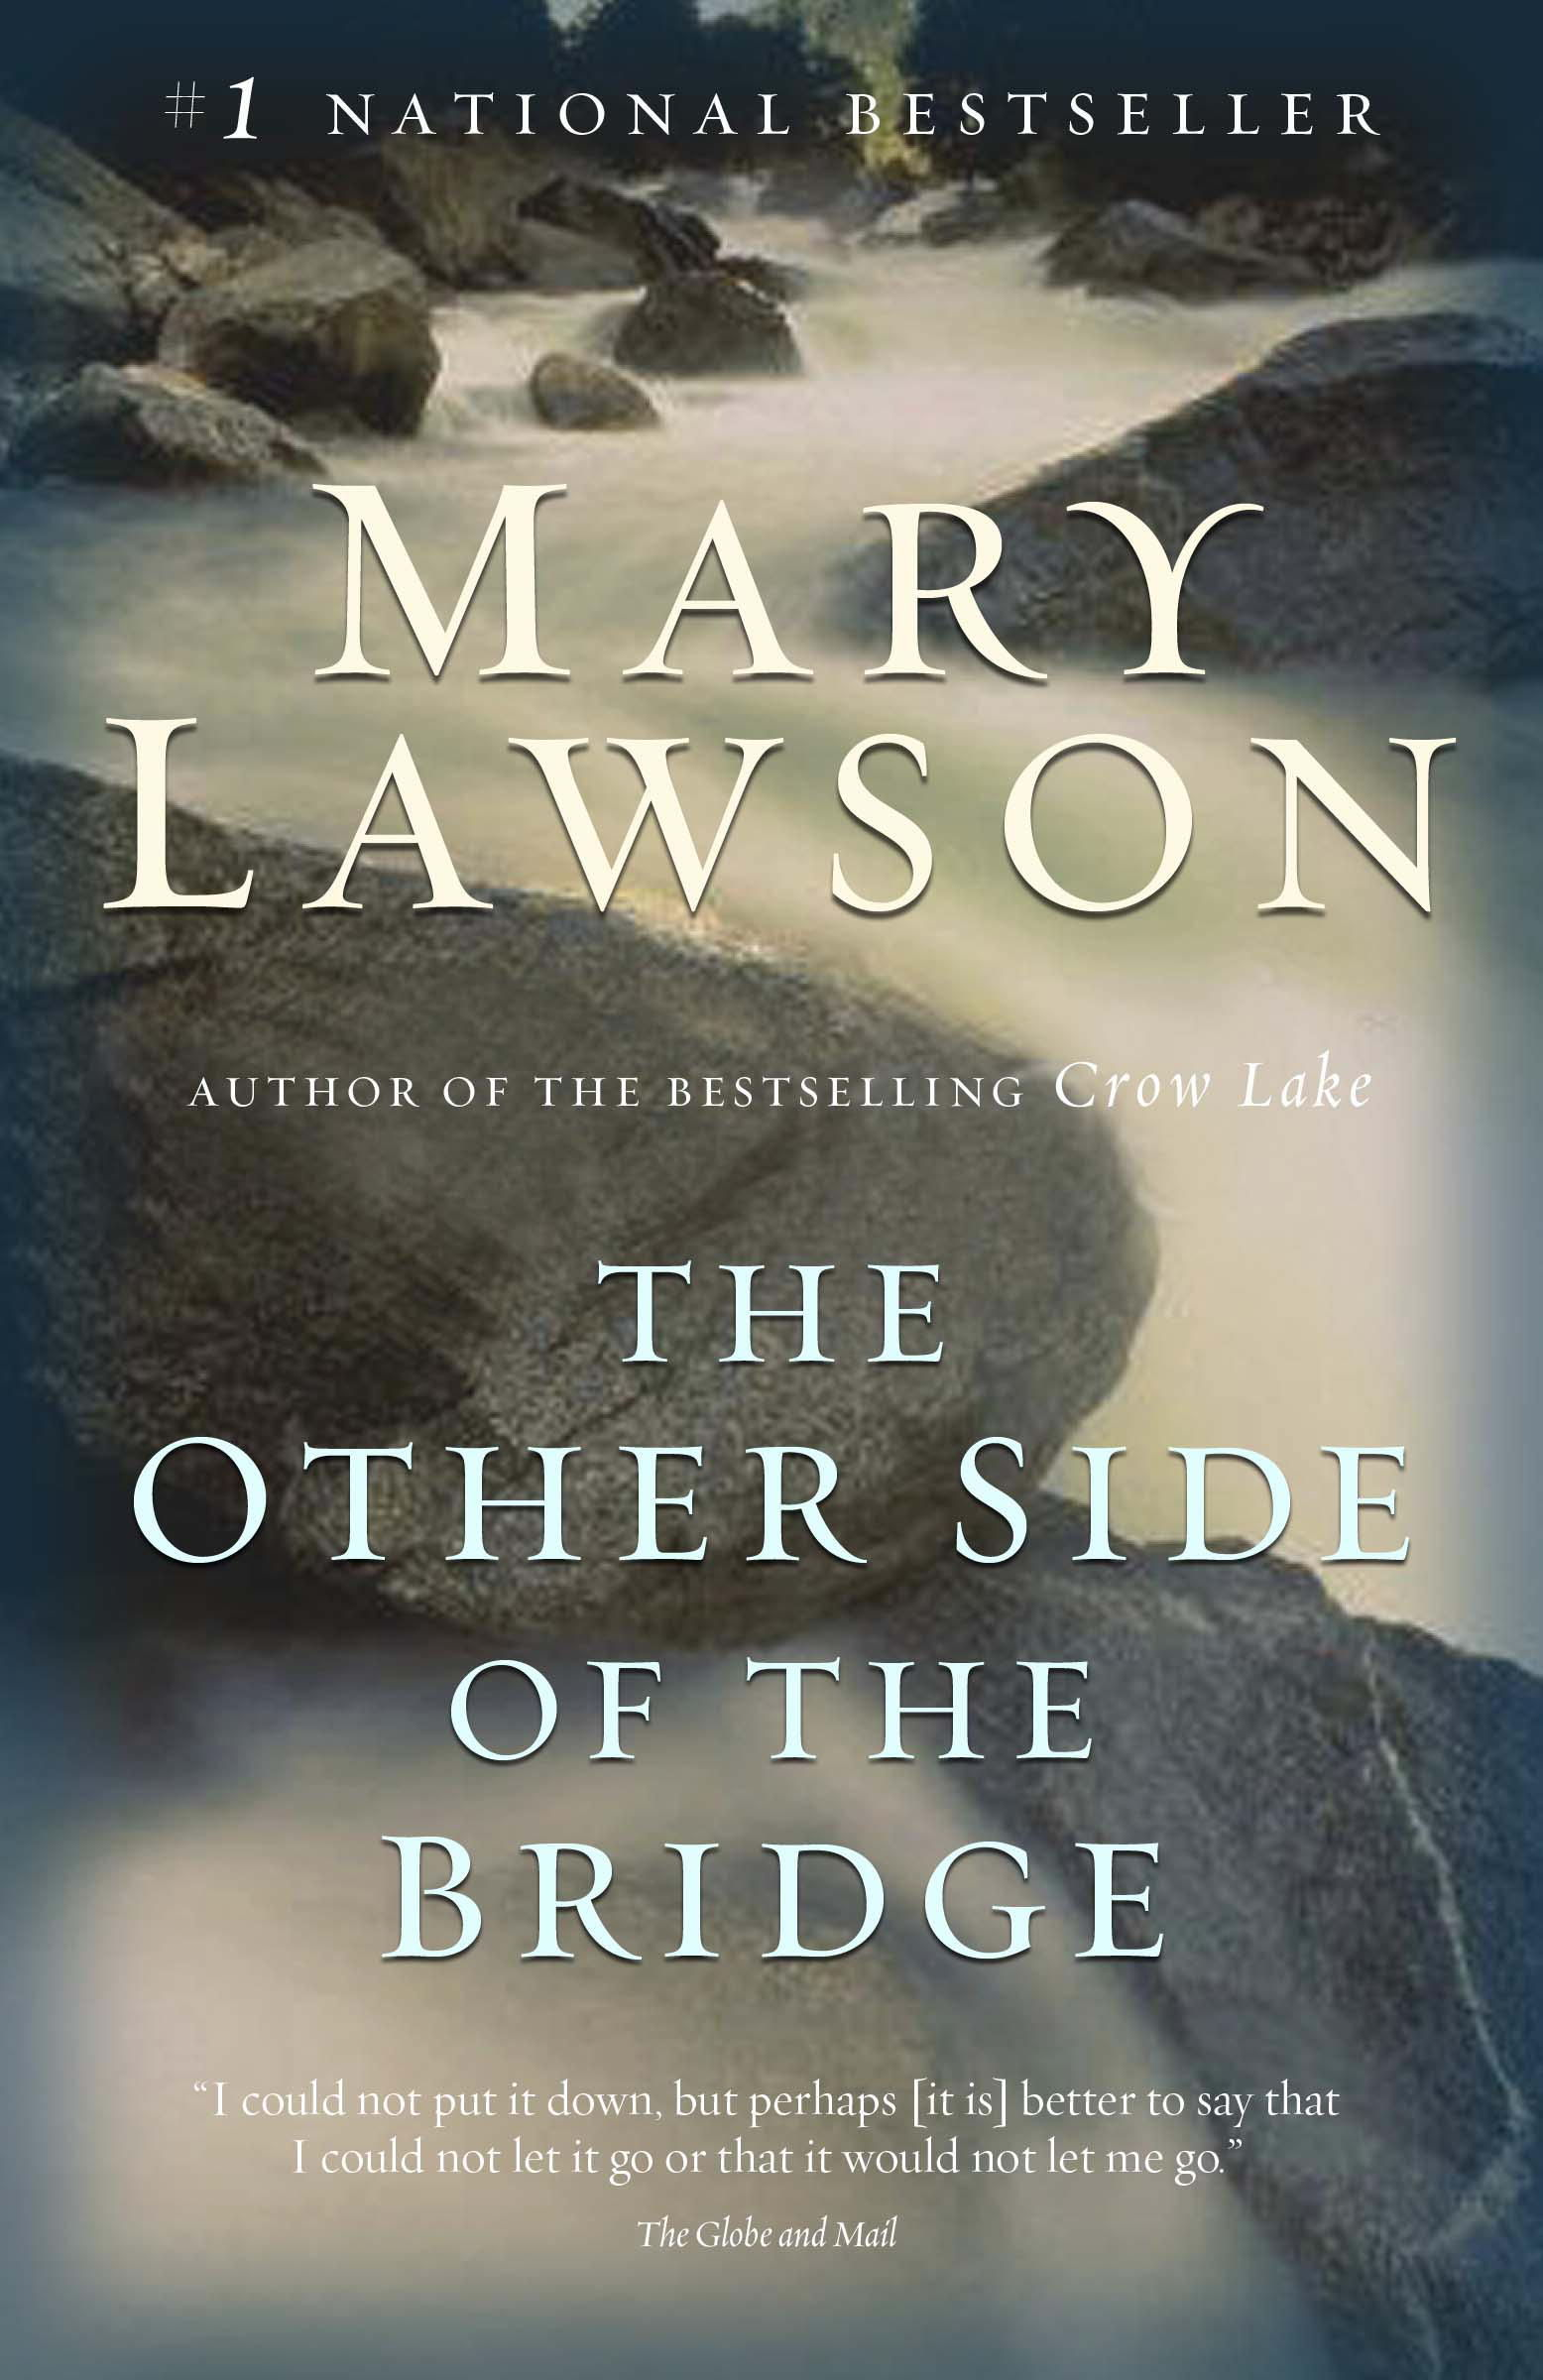 the other side of the bridge mary lawson The other side of the bridge - ebook written by mary lawson read this book using google play books app on your pc, android, ios devices download for offline reading, highlight, bookmark or take notes while you read the other side of the bridge.